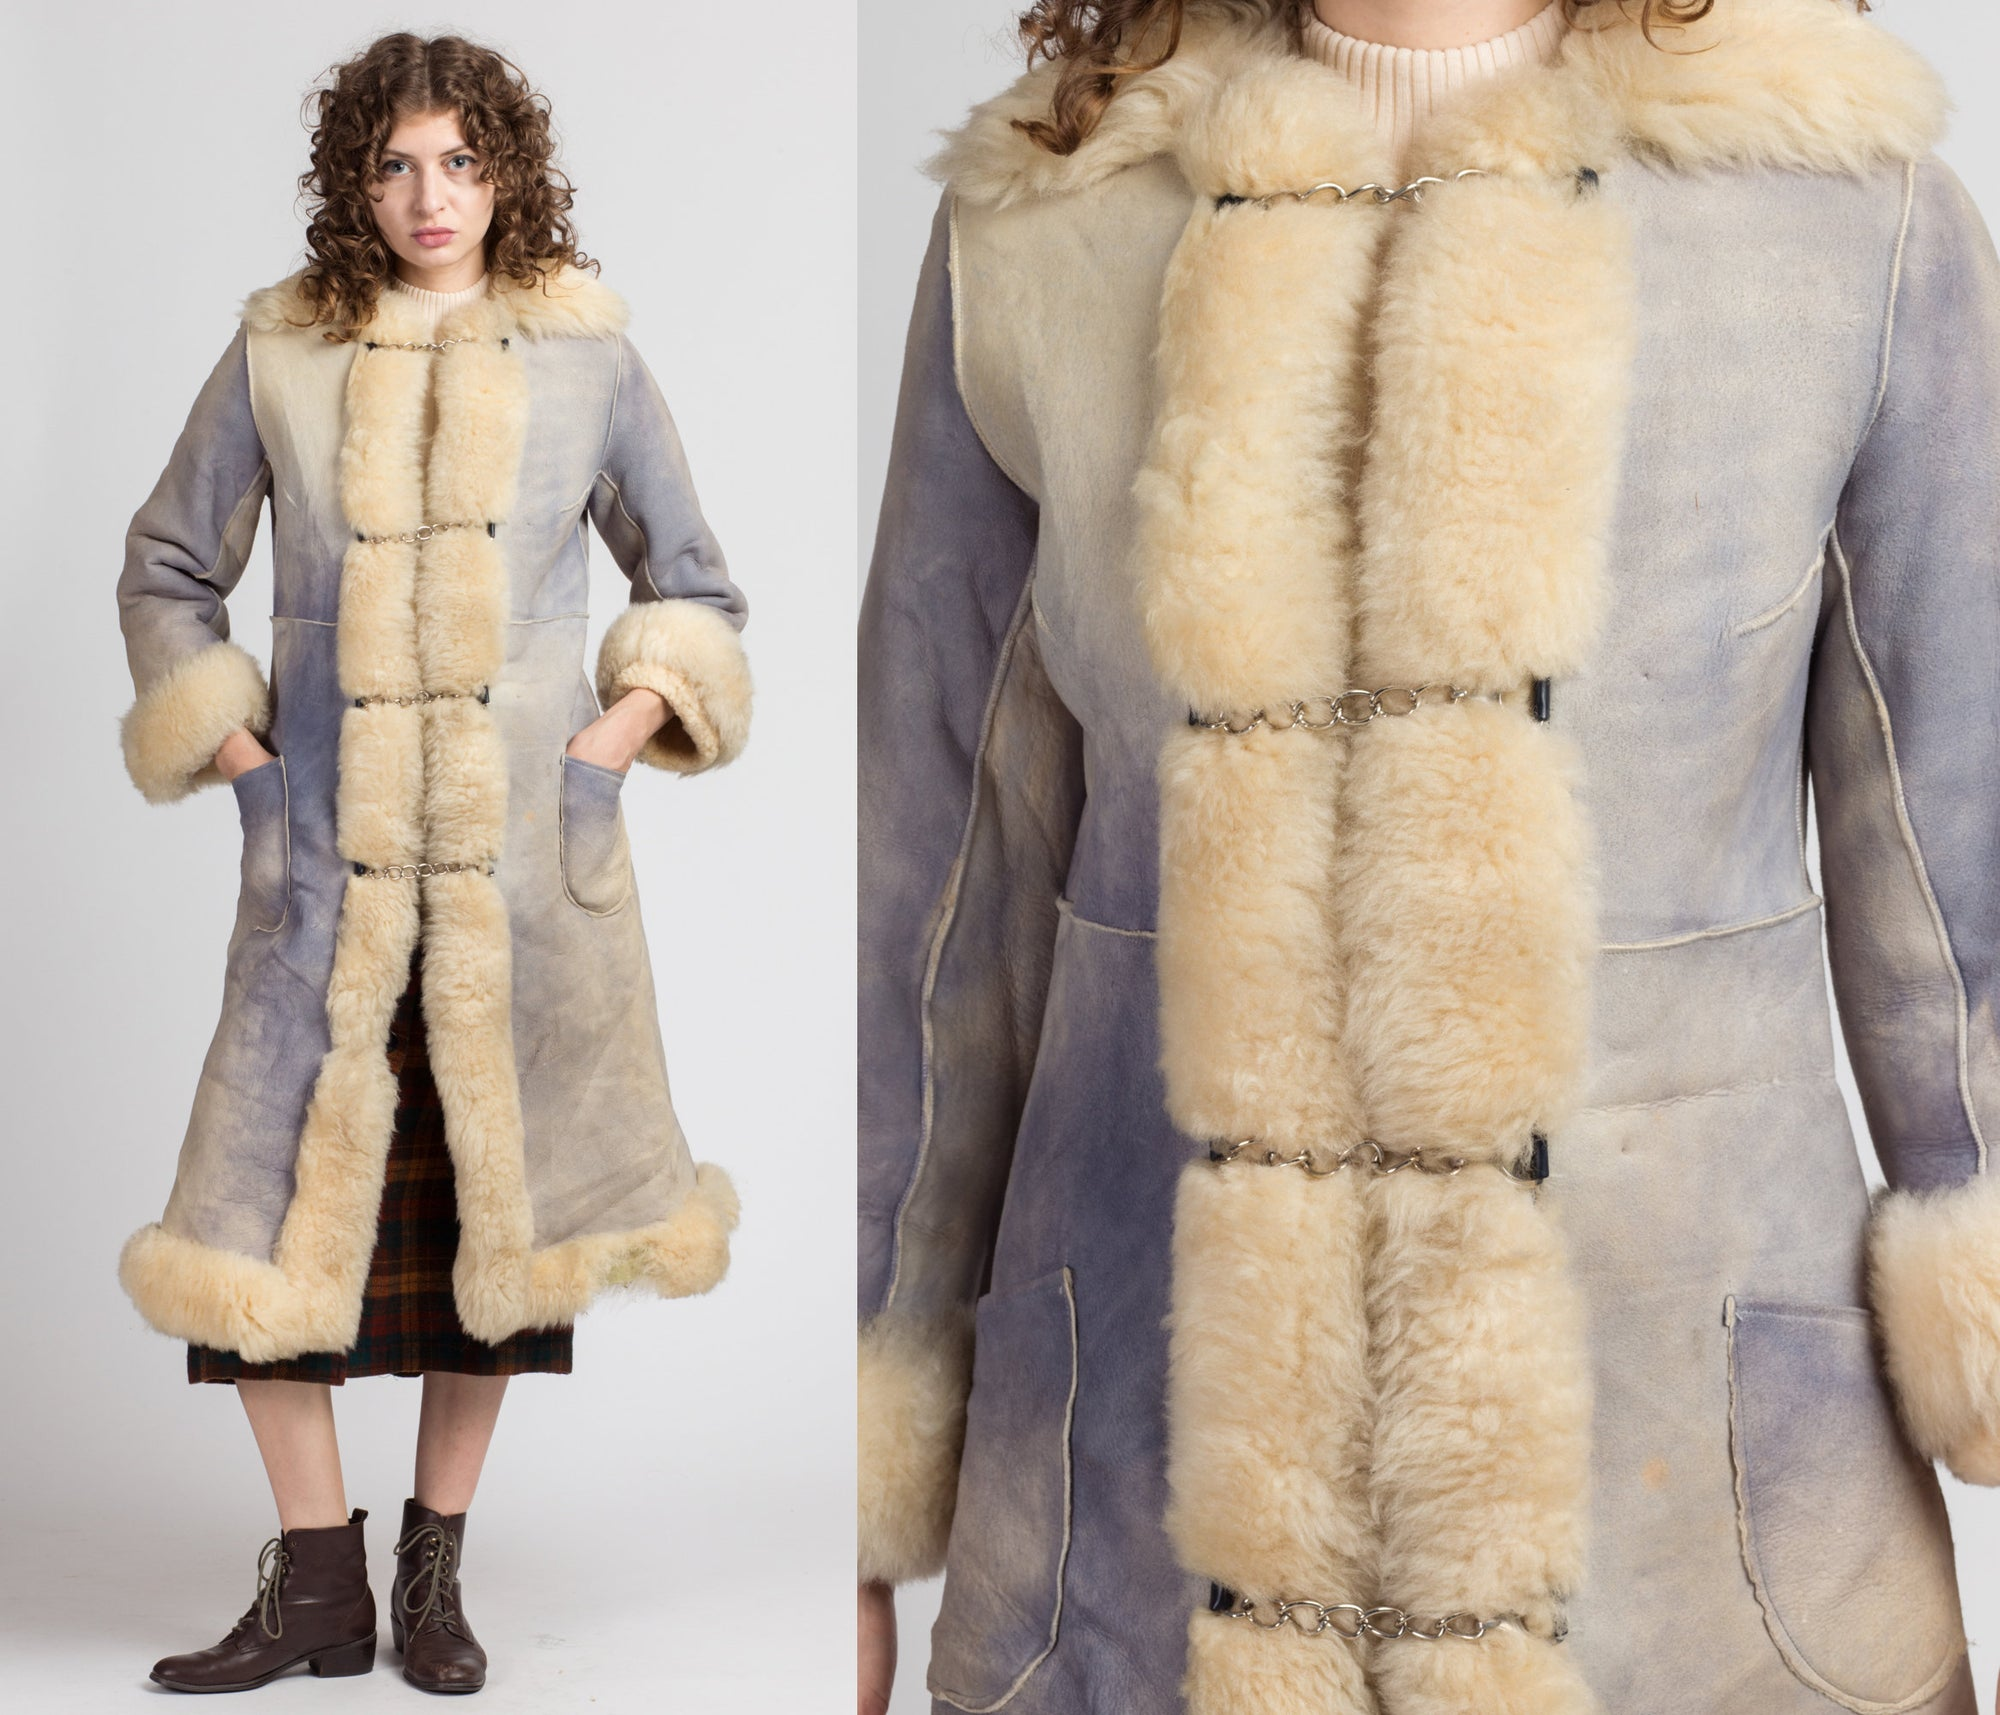 70s Blue Sheepskin Shearling Chain Coat - Small to Medium